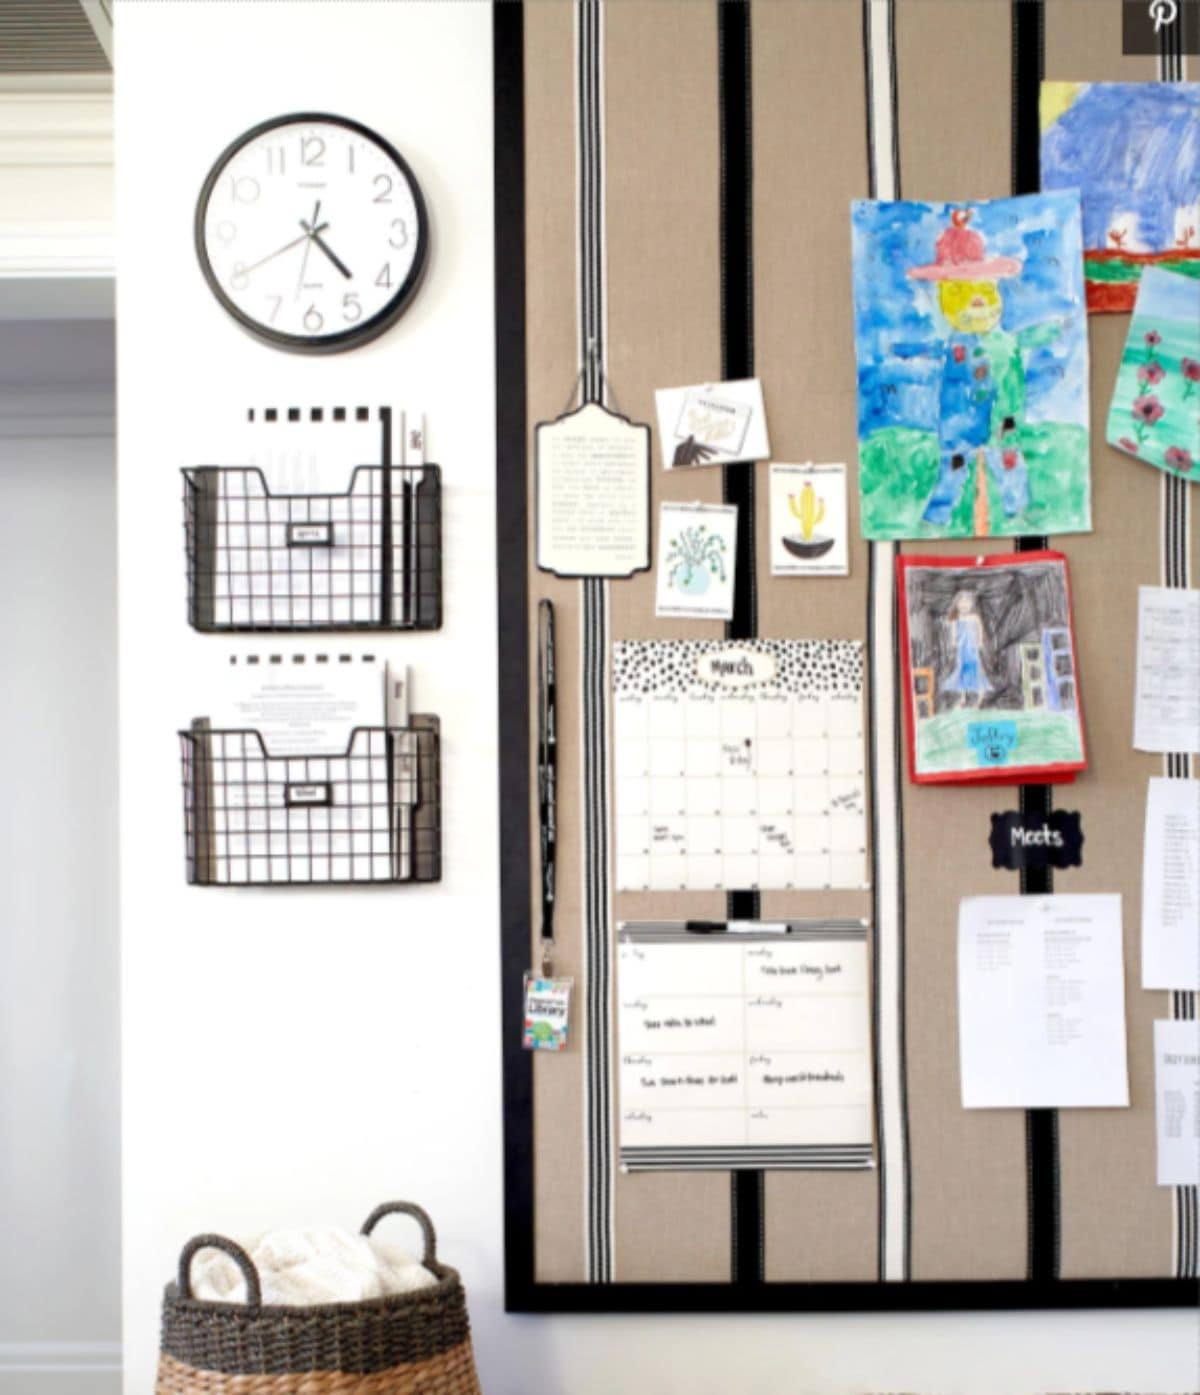 A kitchen wall is shown, with a clock at the top, and two shallow baskets underneat, holding paperwork. On the righ hand side is a display board with artwork and calendars on it.